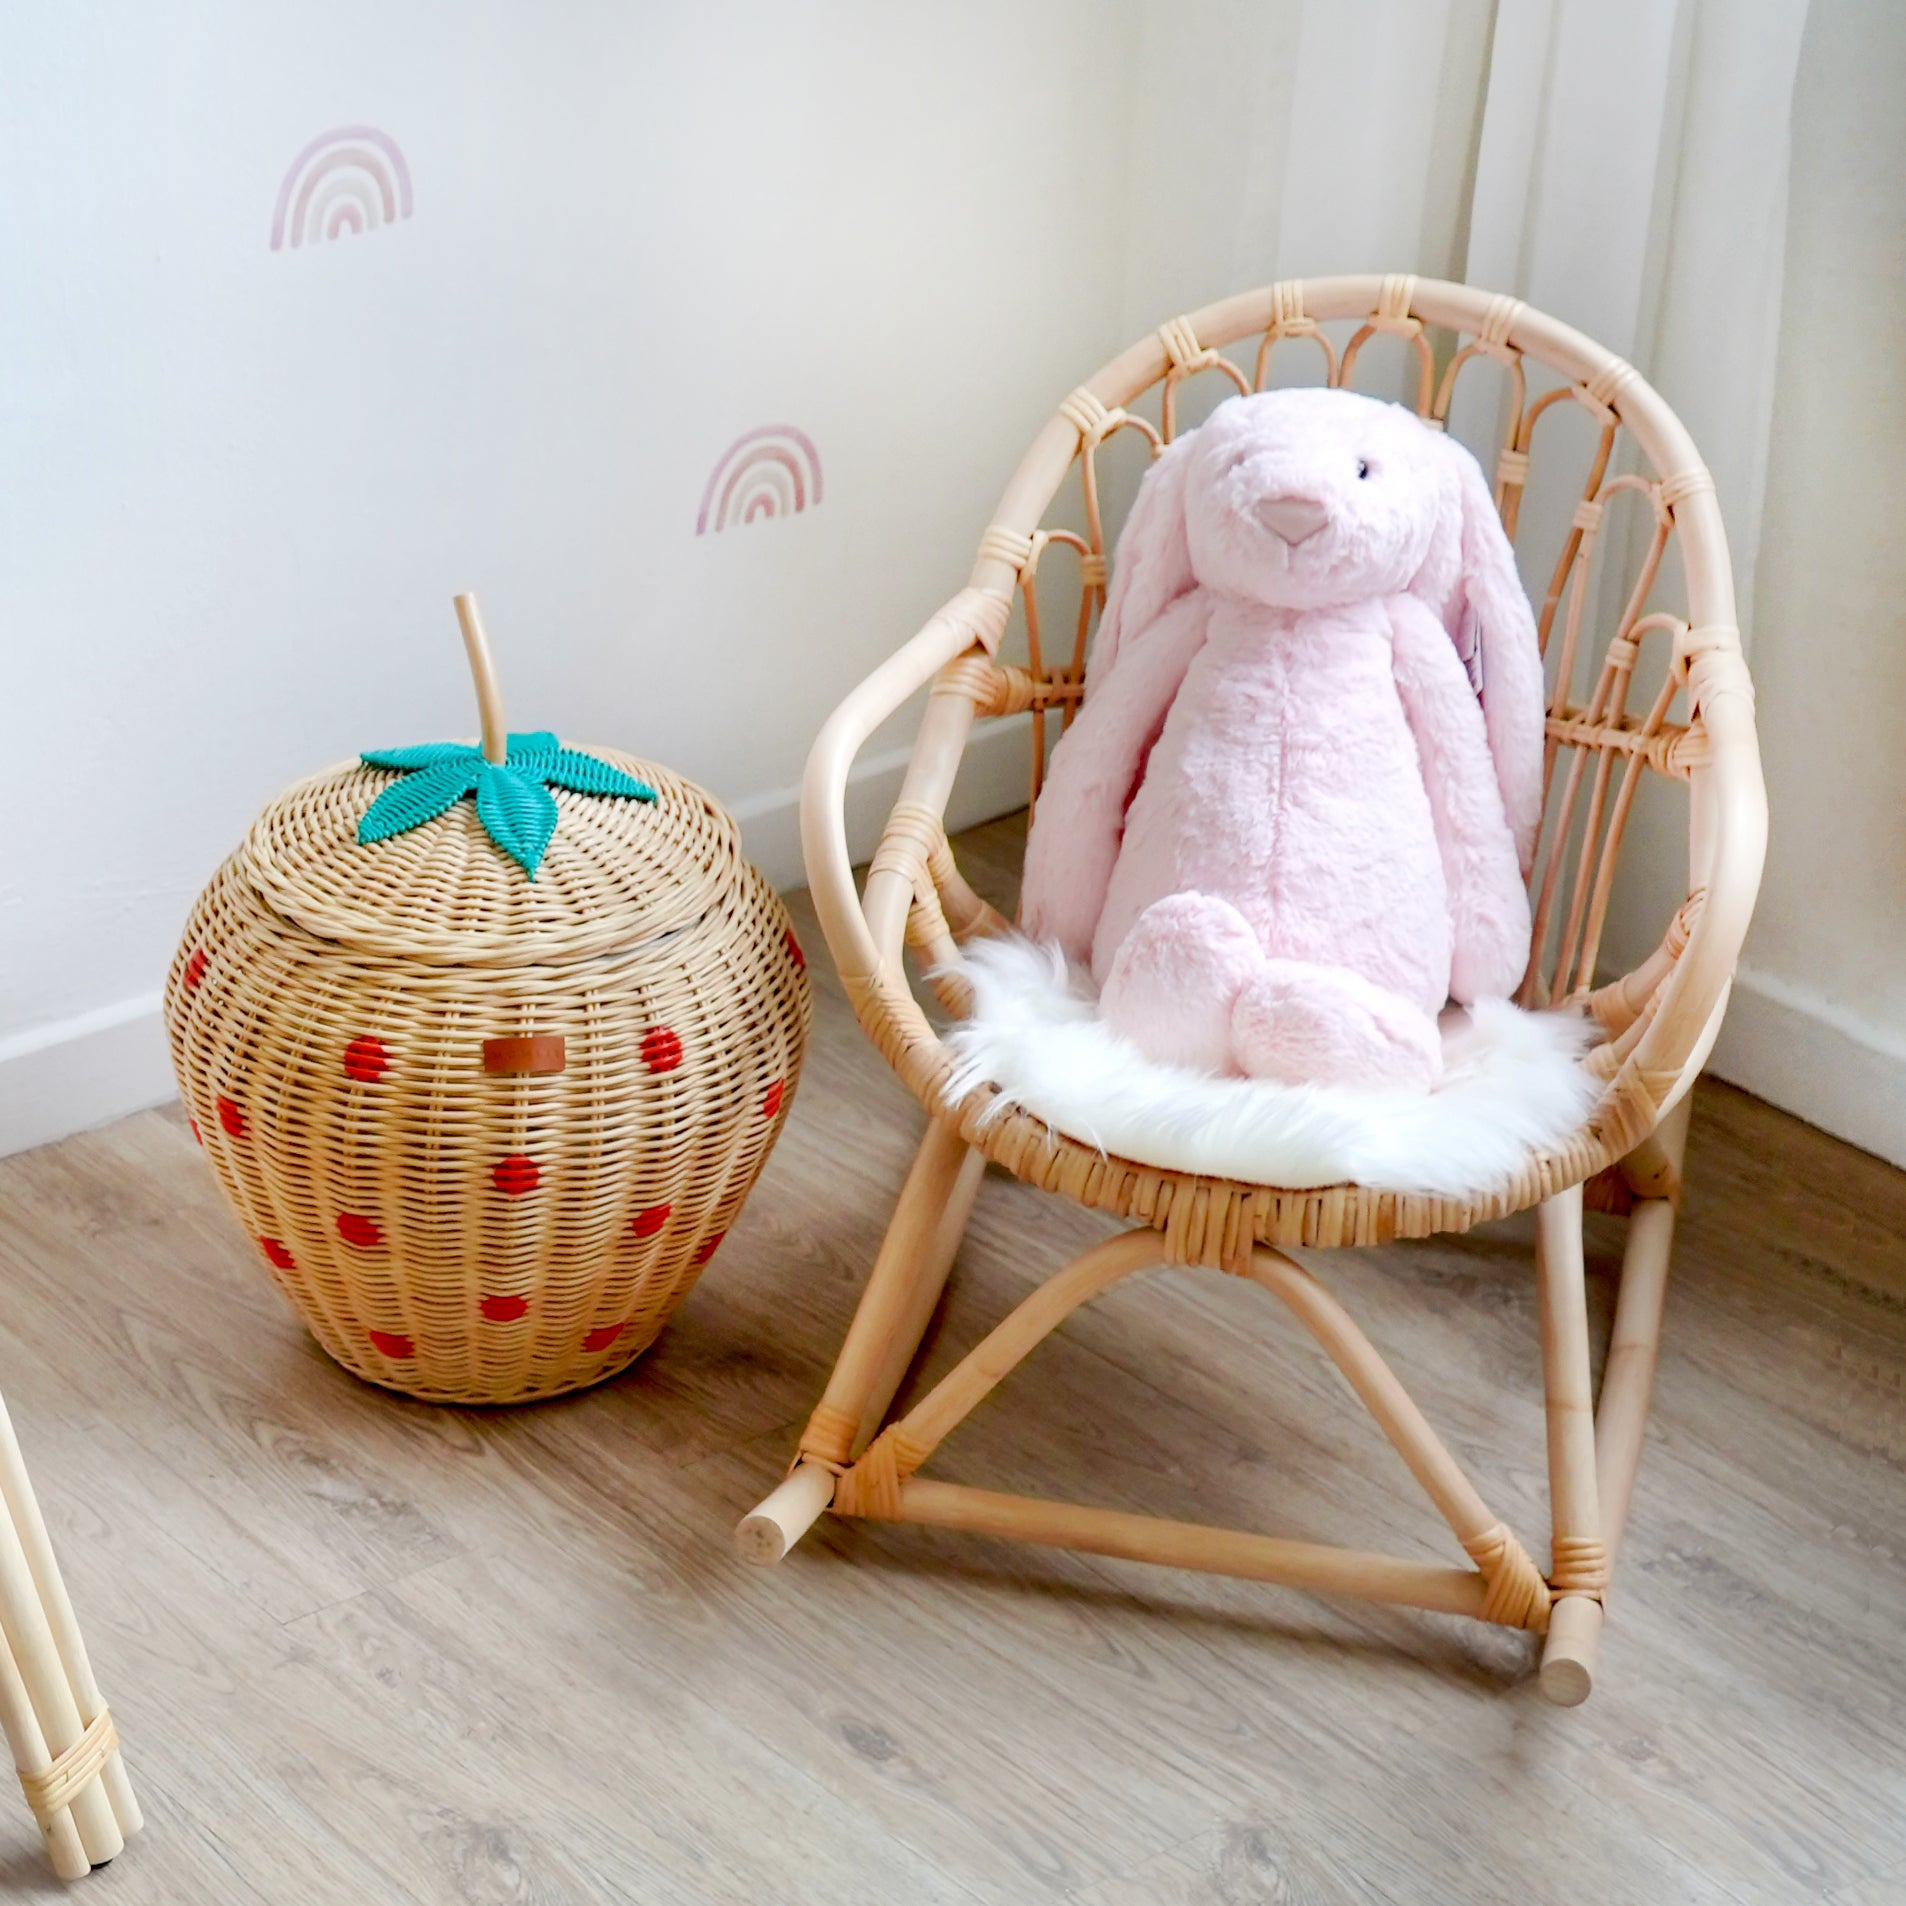 Twinkle Rocking Chair (Arriving 21st Dec)